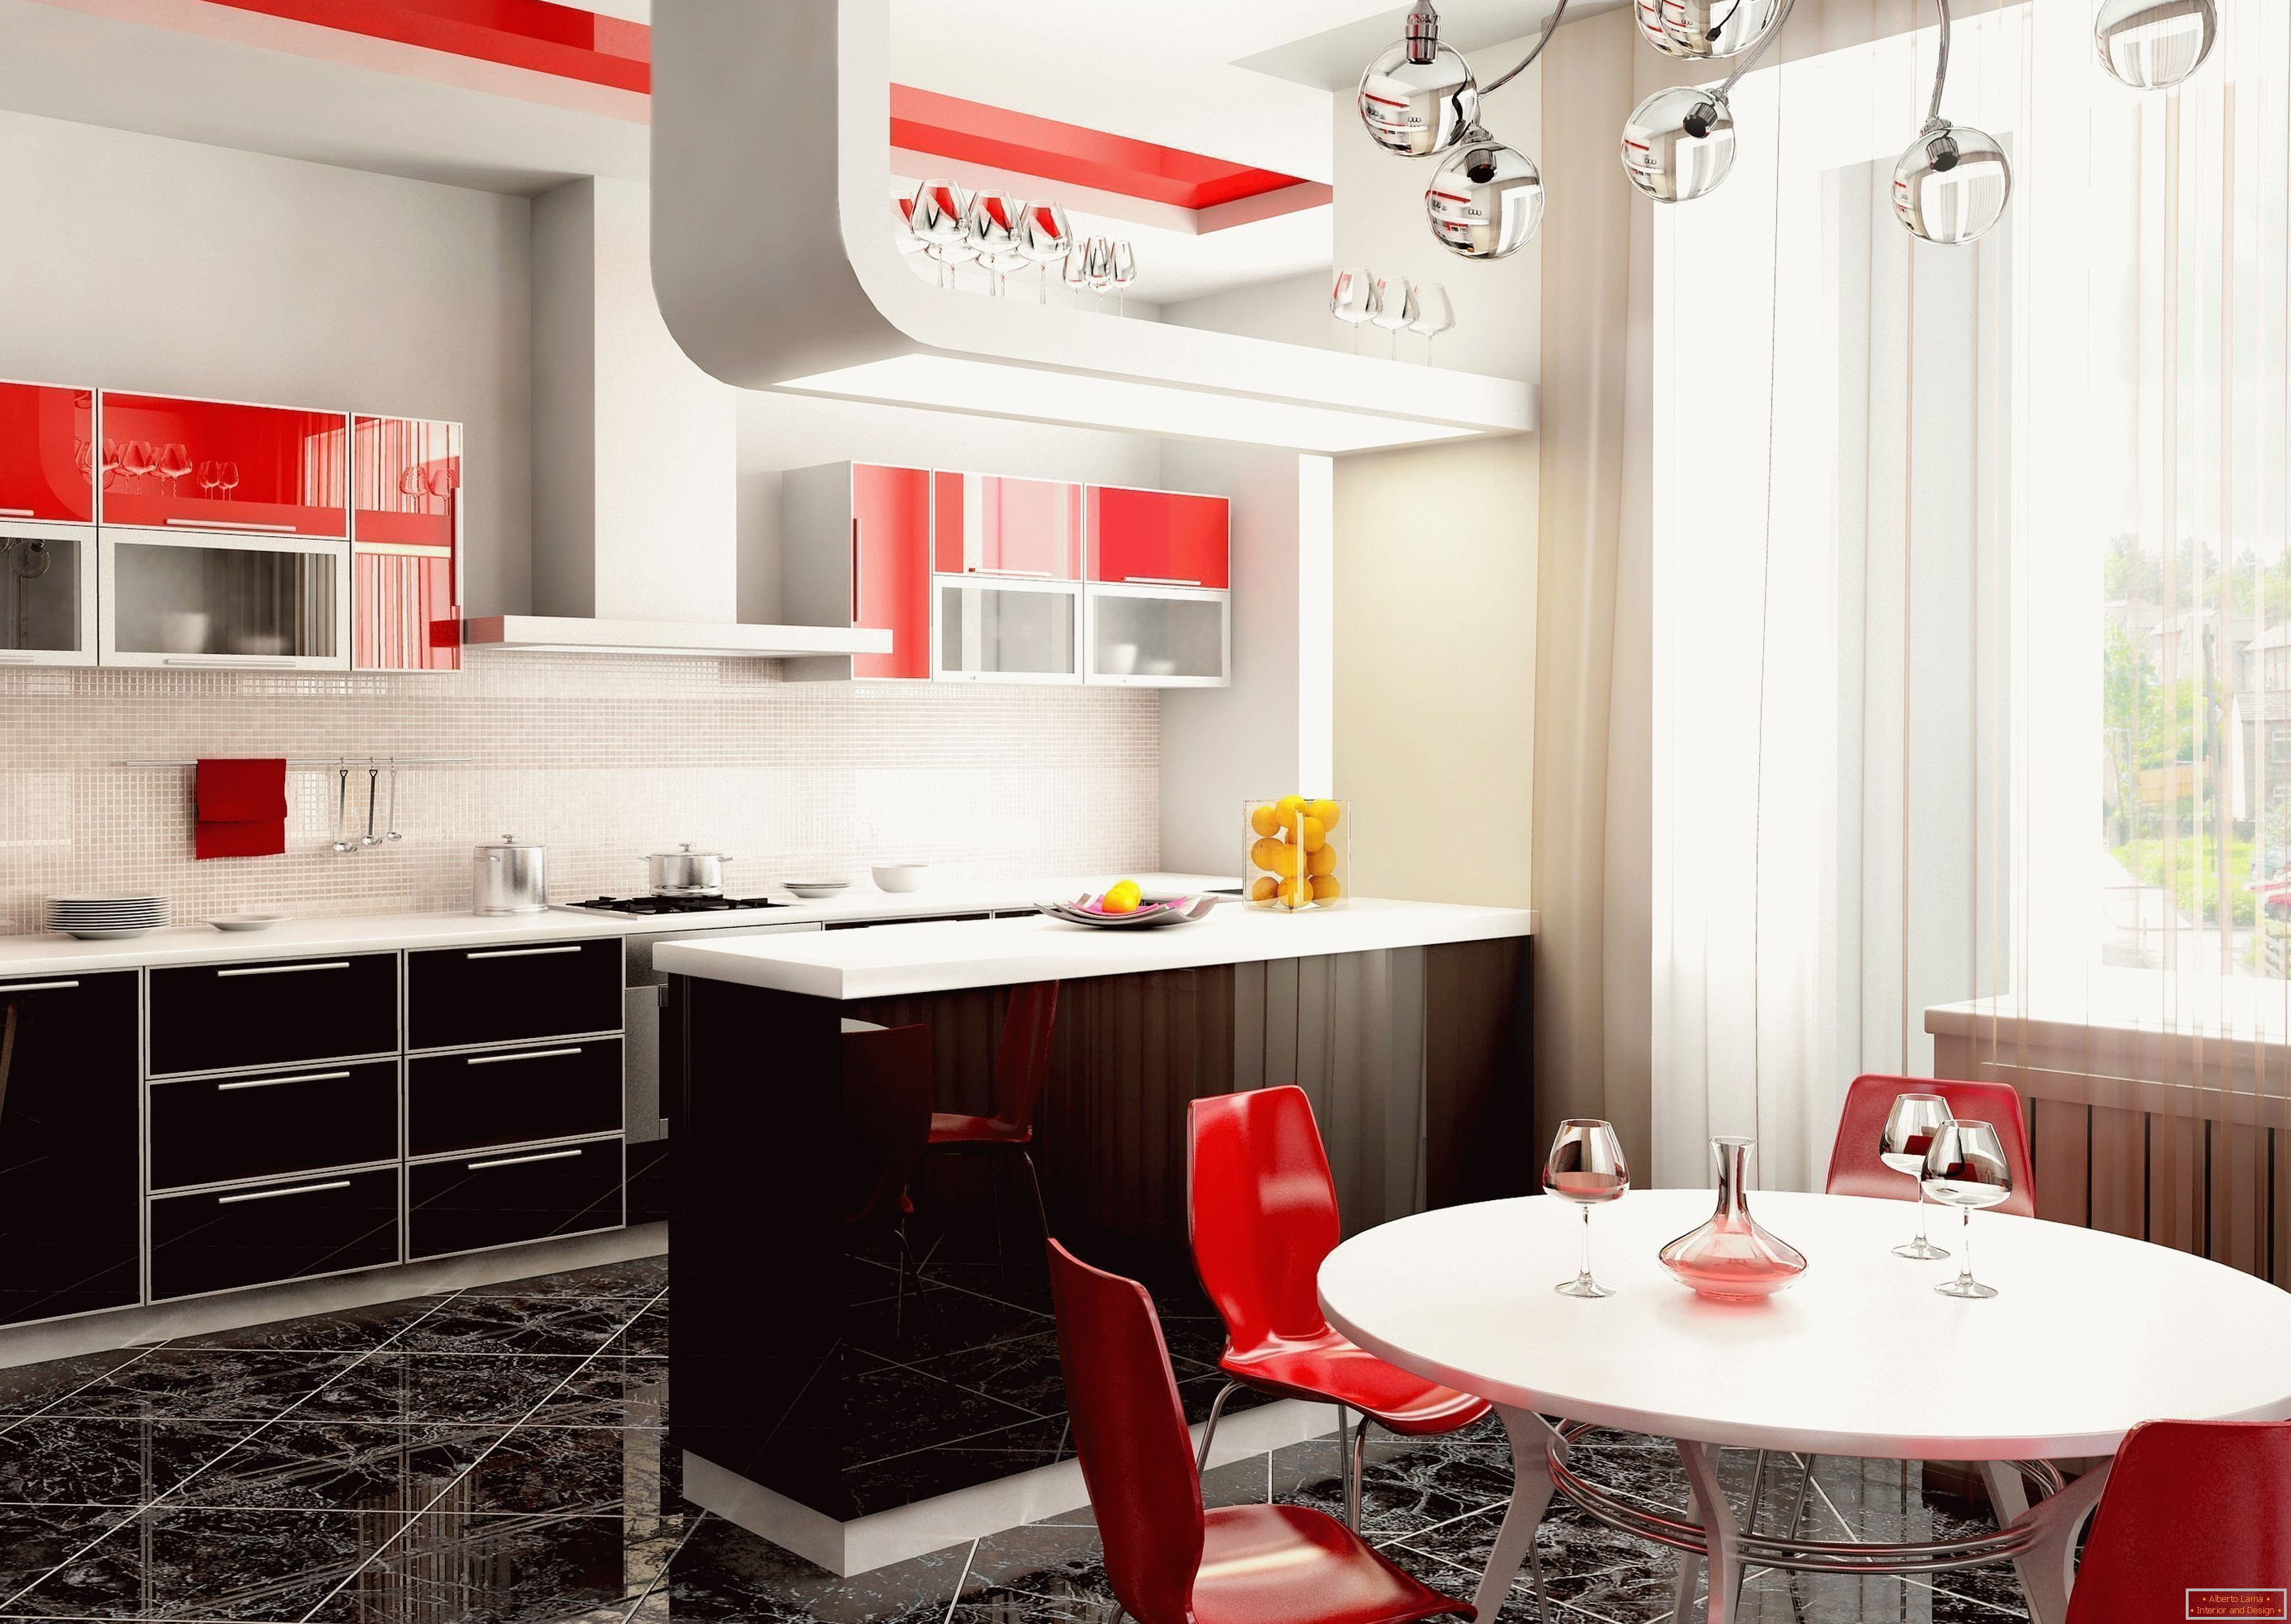 Bright interior of the kitchen in the apartment with red accents